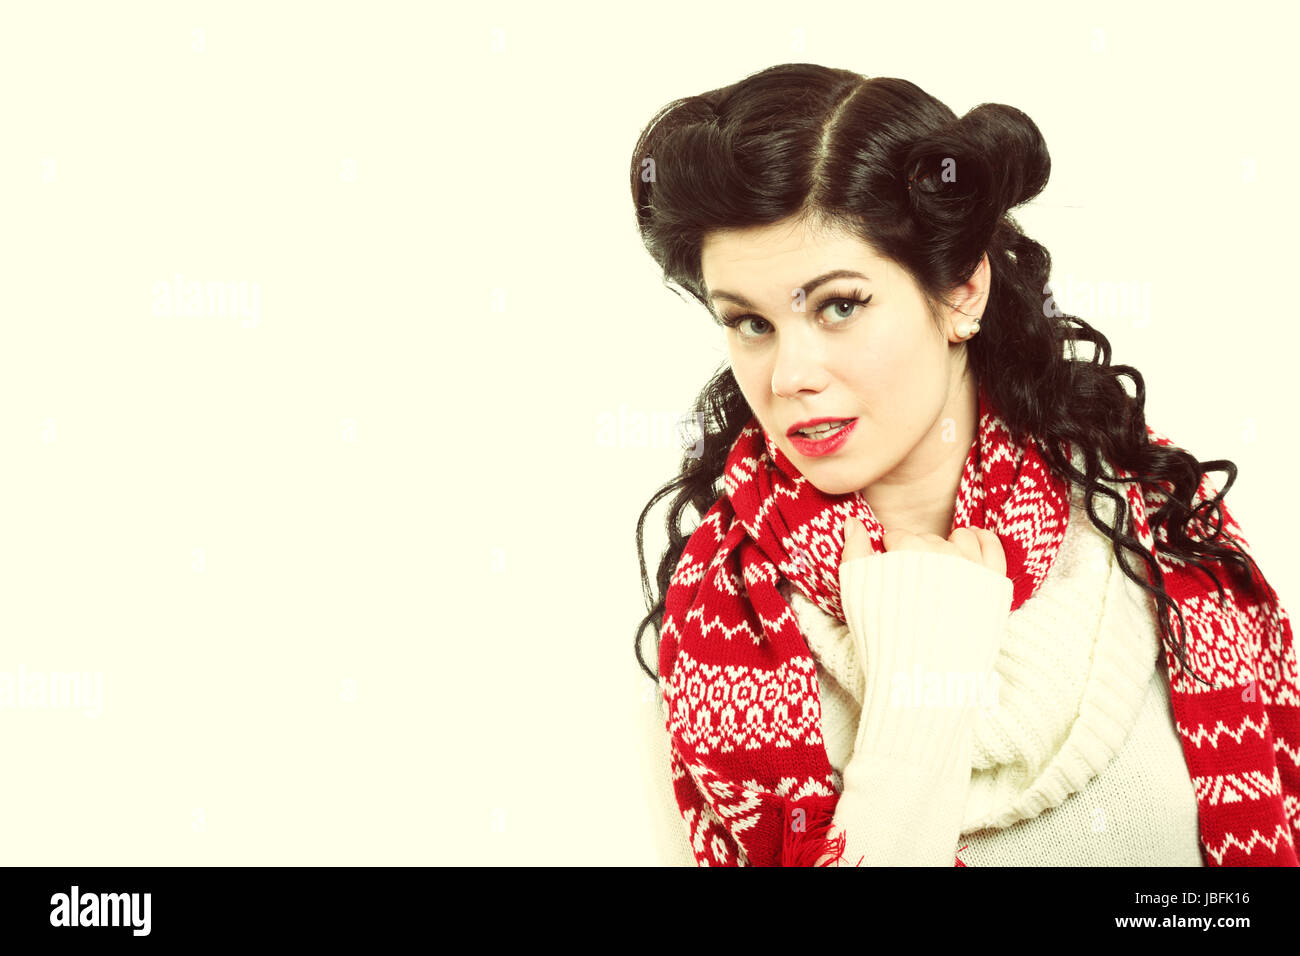 Winter Fashion Portrait Brunette Woman Retro Hairstyle In Warm Stock